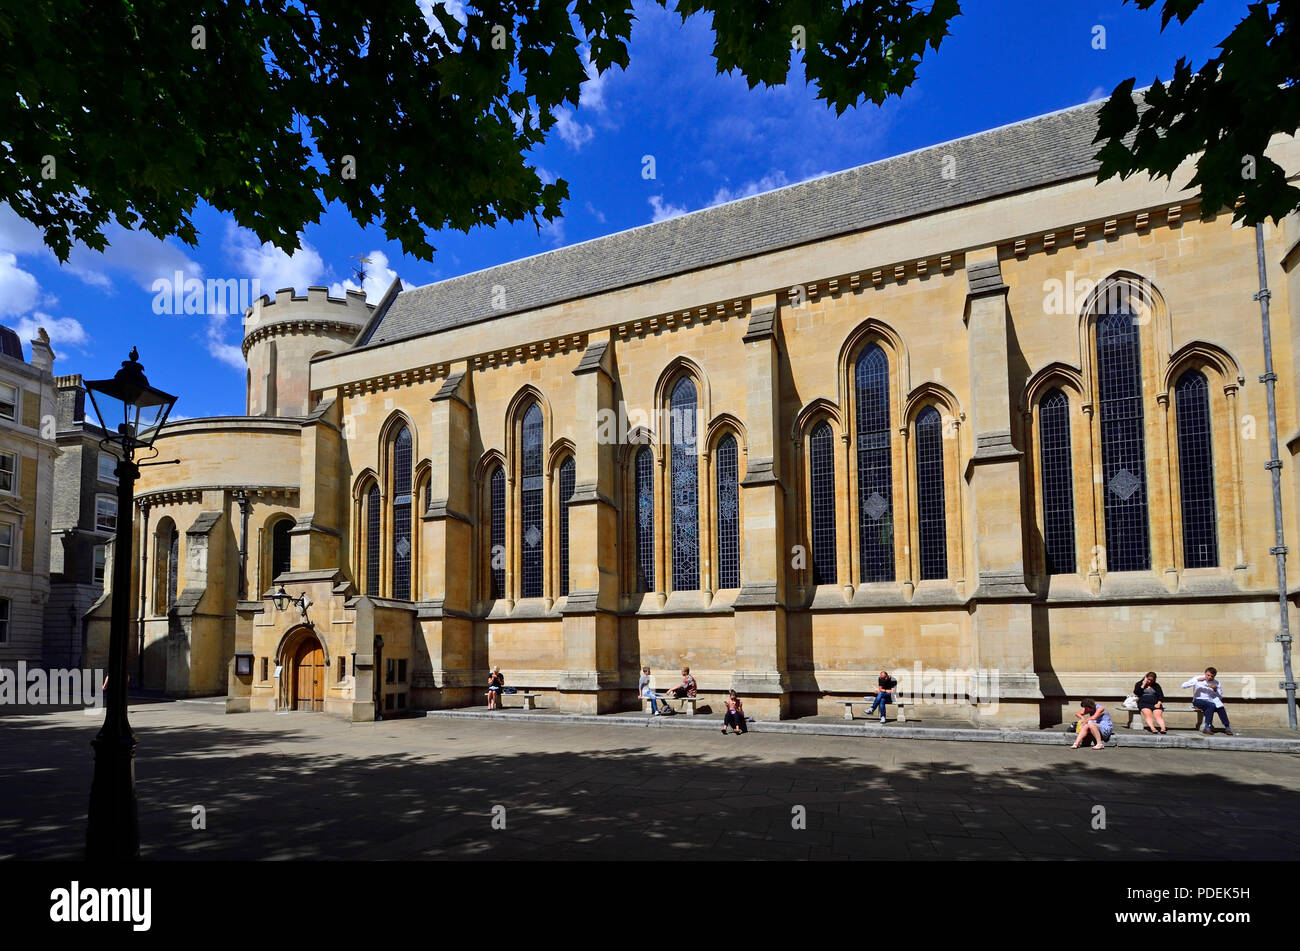 Temple Church, Inner Temple, London, England, UK. 12th century church built by the Knights Templar - Stock Image